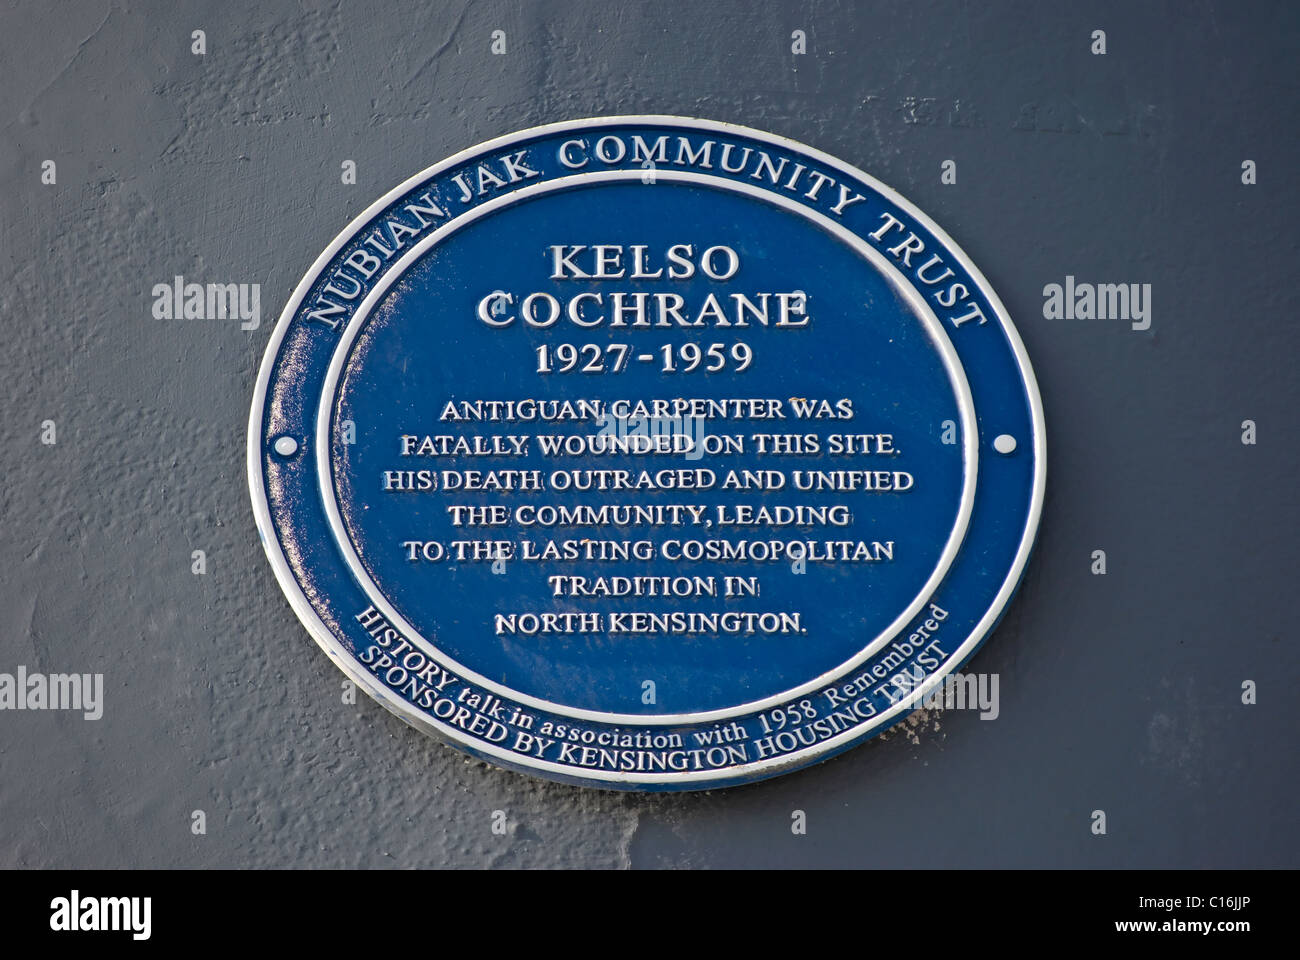 nubian jak community trust plaque at the spot where kelso cochrane was fatally stabbed in a racist attack, in london, - Stock Image